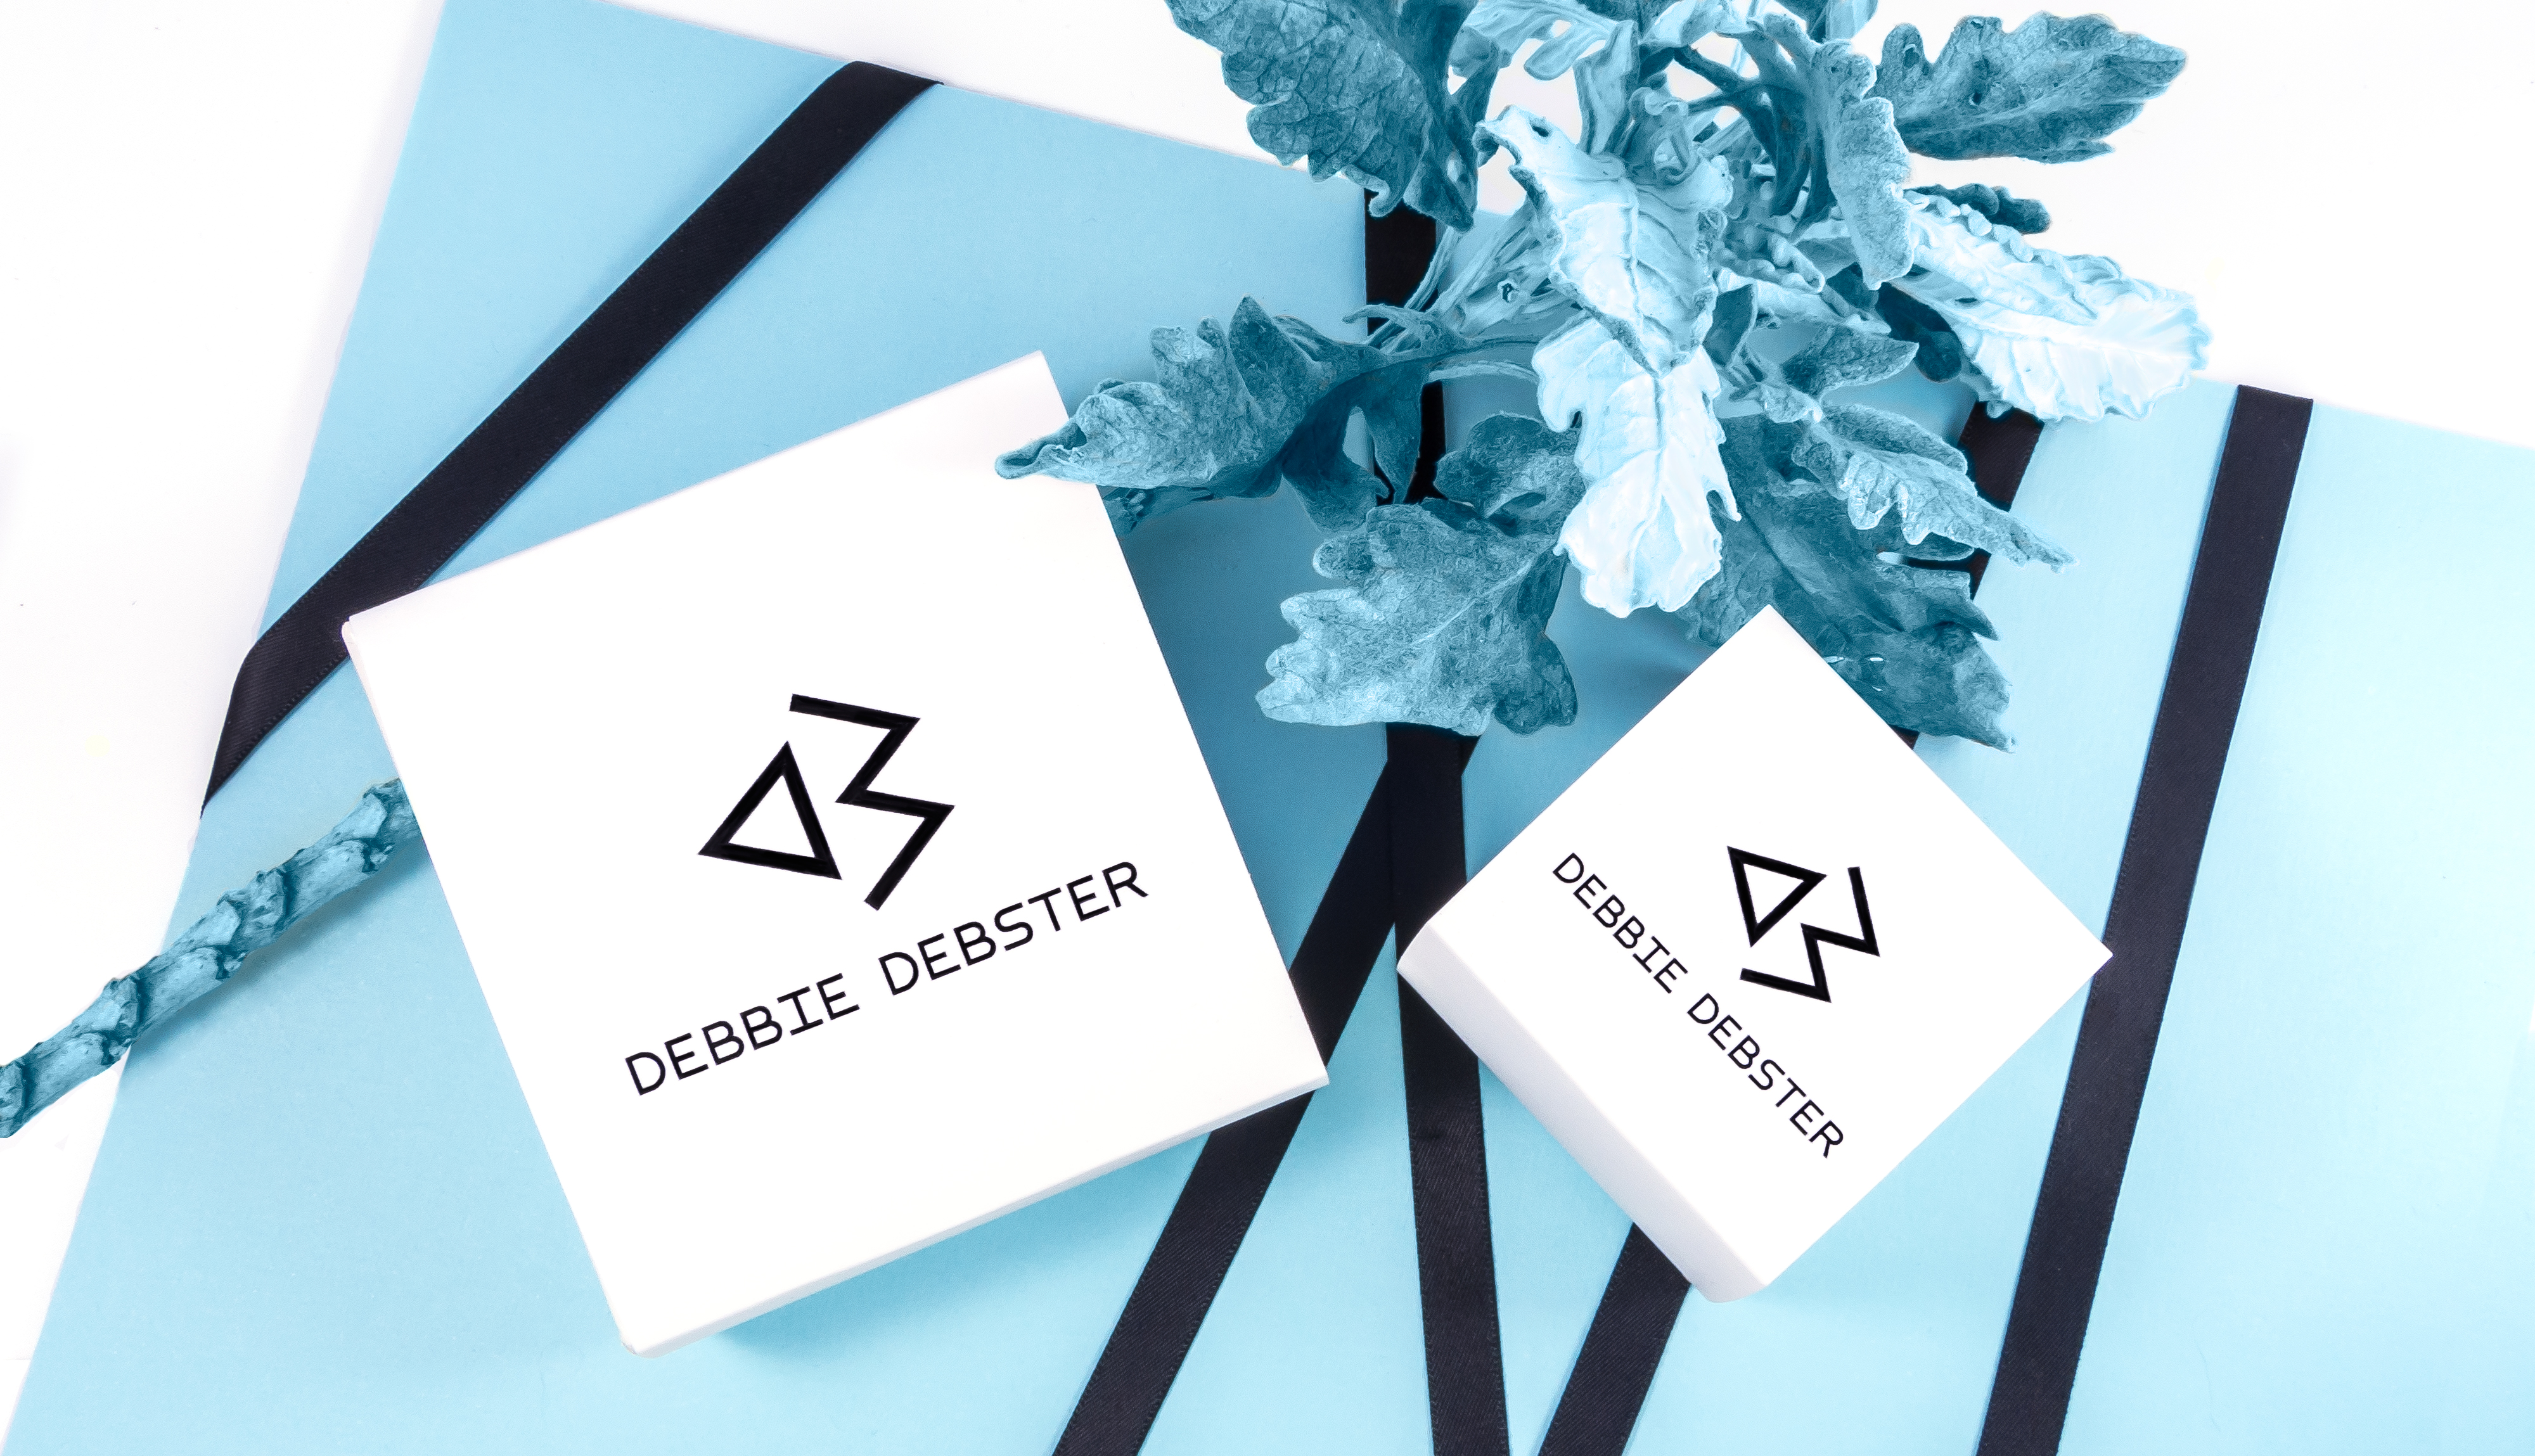 debbie debster packaging